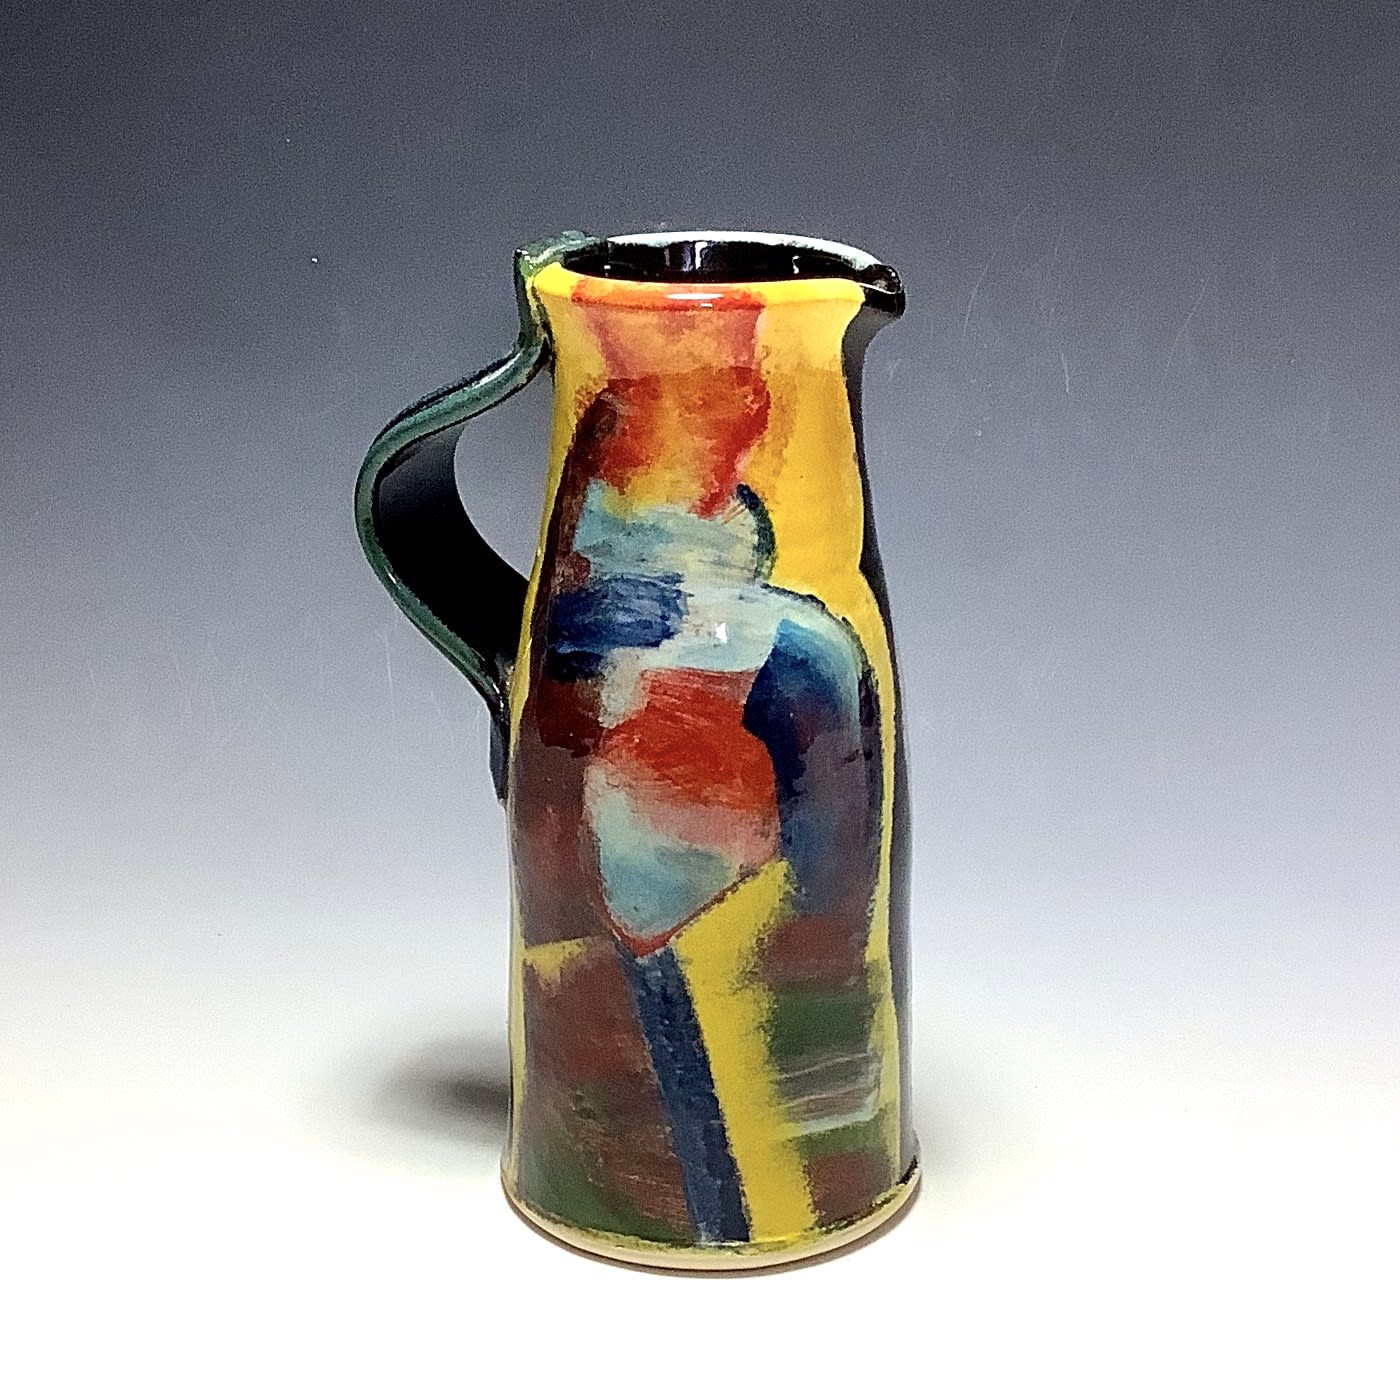 """<span class=""""link fancybox-details-link""""><a href=""""/artists/100-john-pollex/works/7855-john-pollex-tall-jug-2021/"""">View Detail Page</a></span><div class=""""artist""""><strong>John Pollex</strong></div> <div class=""""title""""><em>Tall Jug</em>, 2021</div> <div class=""""signed_and_dated"""">impressed with the artist's seal mark 'JP'</div> <div class=""""medium"""">white earthenware decorated with coloured slips</div> <div class=""""dimensions"""">height. 23 cm x diameter. 10 cm</div><div class=""""price"""">£242.00</div><div class=""""copyright_line"""">Own Art: £24.20 x 10 Months, 0% APR</div>"""